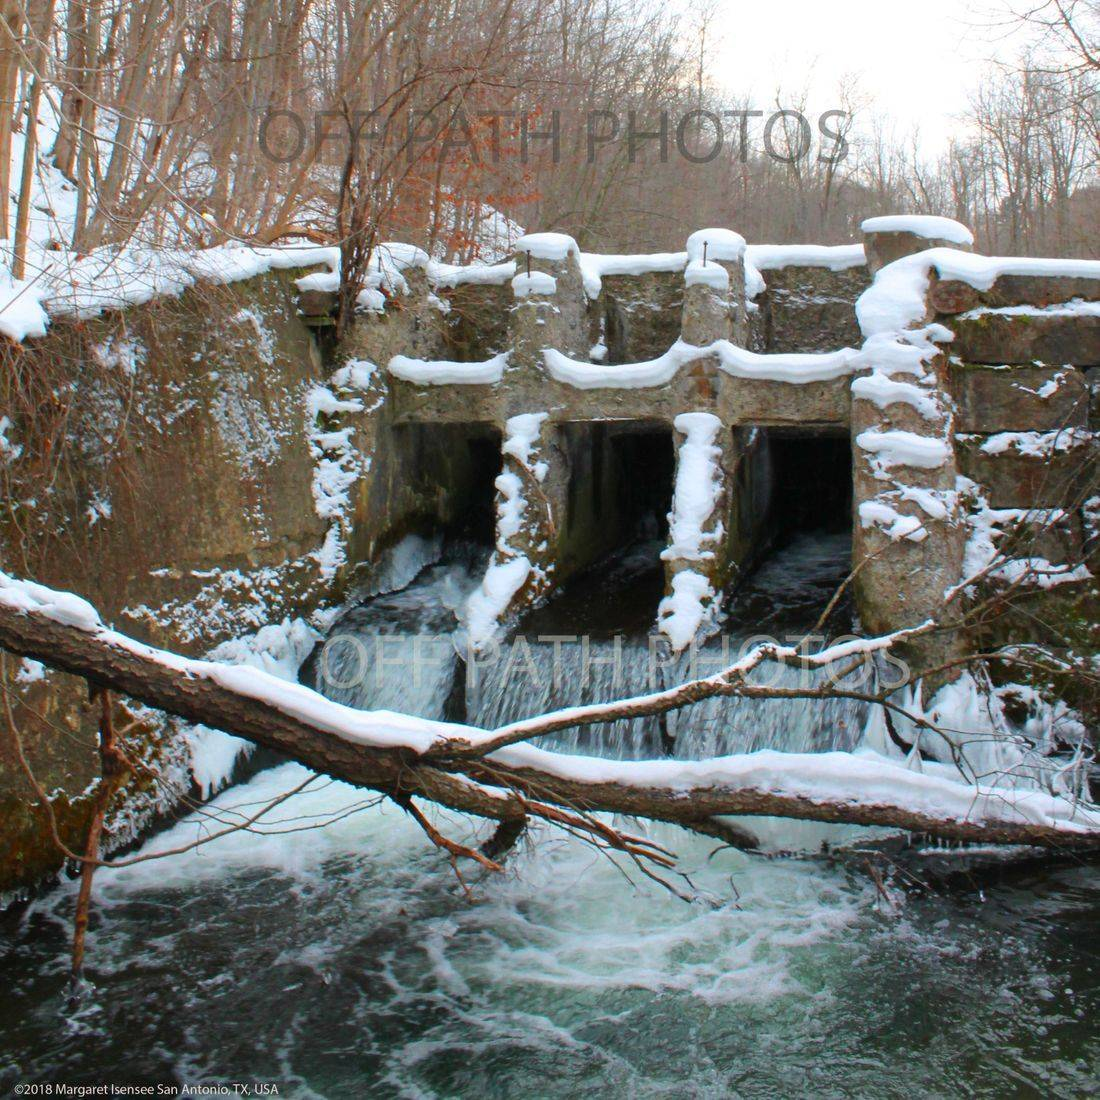 photography, Old Mill Dam, water, winter, snow, woods, abandoned, stream,